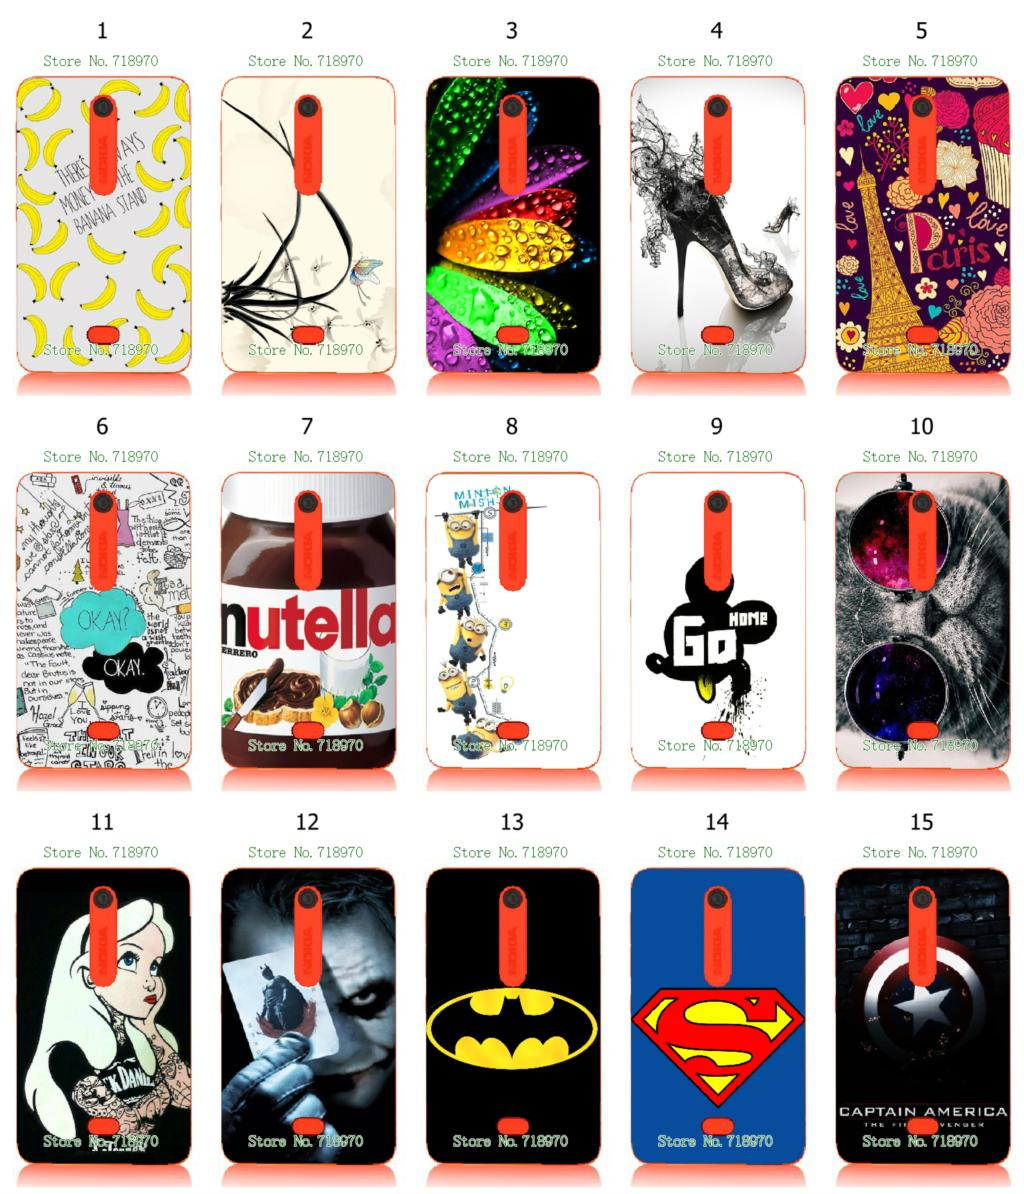 hybrid retail flowers colorful superhero 15designs new arrival white hard mobile phone bags & cases for Nokia Asha 501 free ship(China (Mainland))